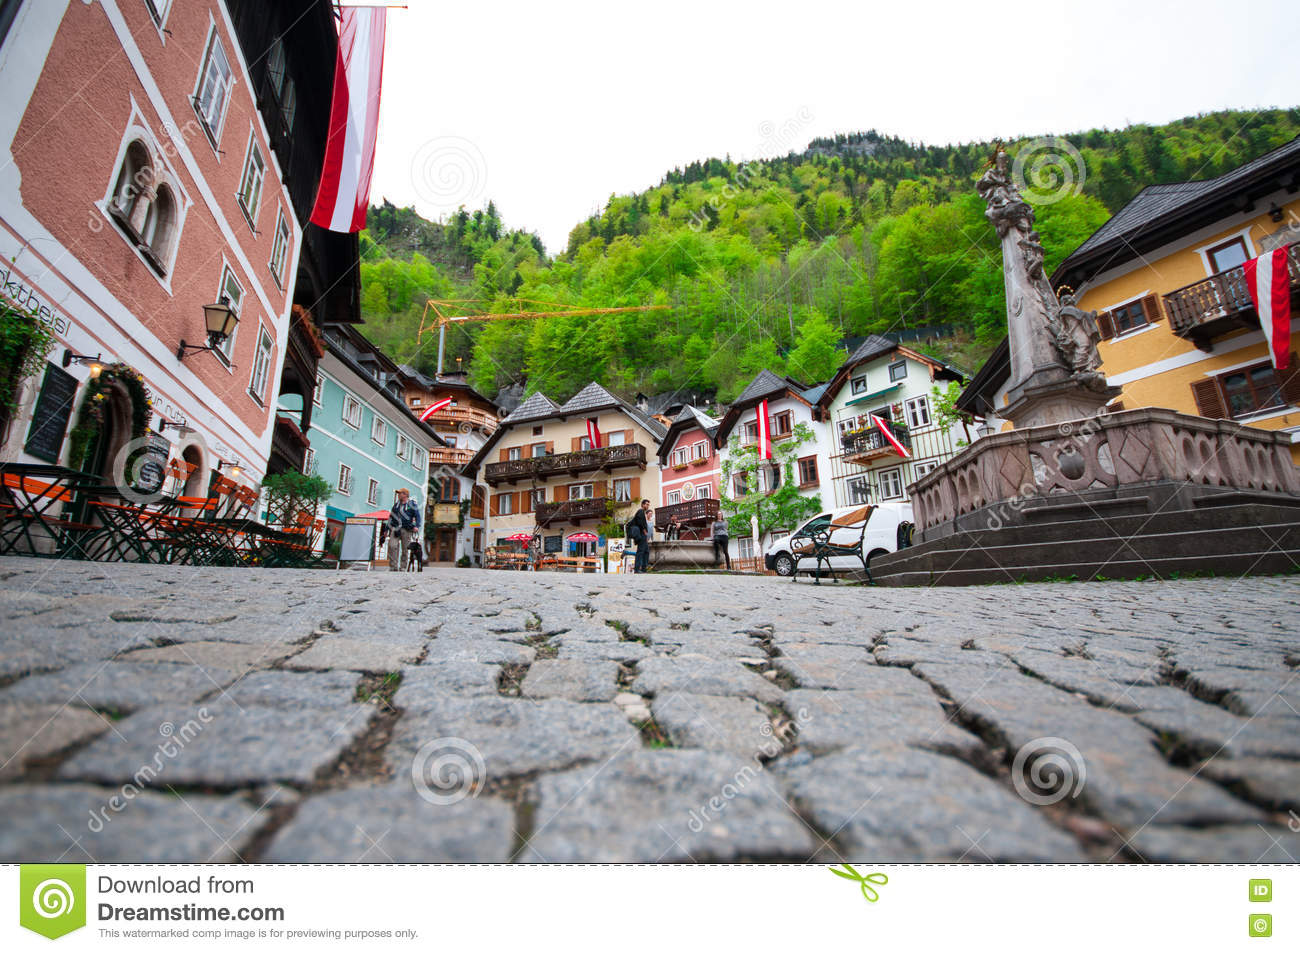 Cenic picture-postcard view of the historic town square of Hallstatt with traditional colorful houses and church at Hallstatter Se